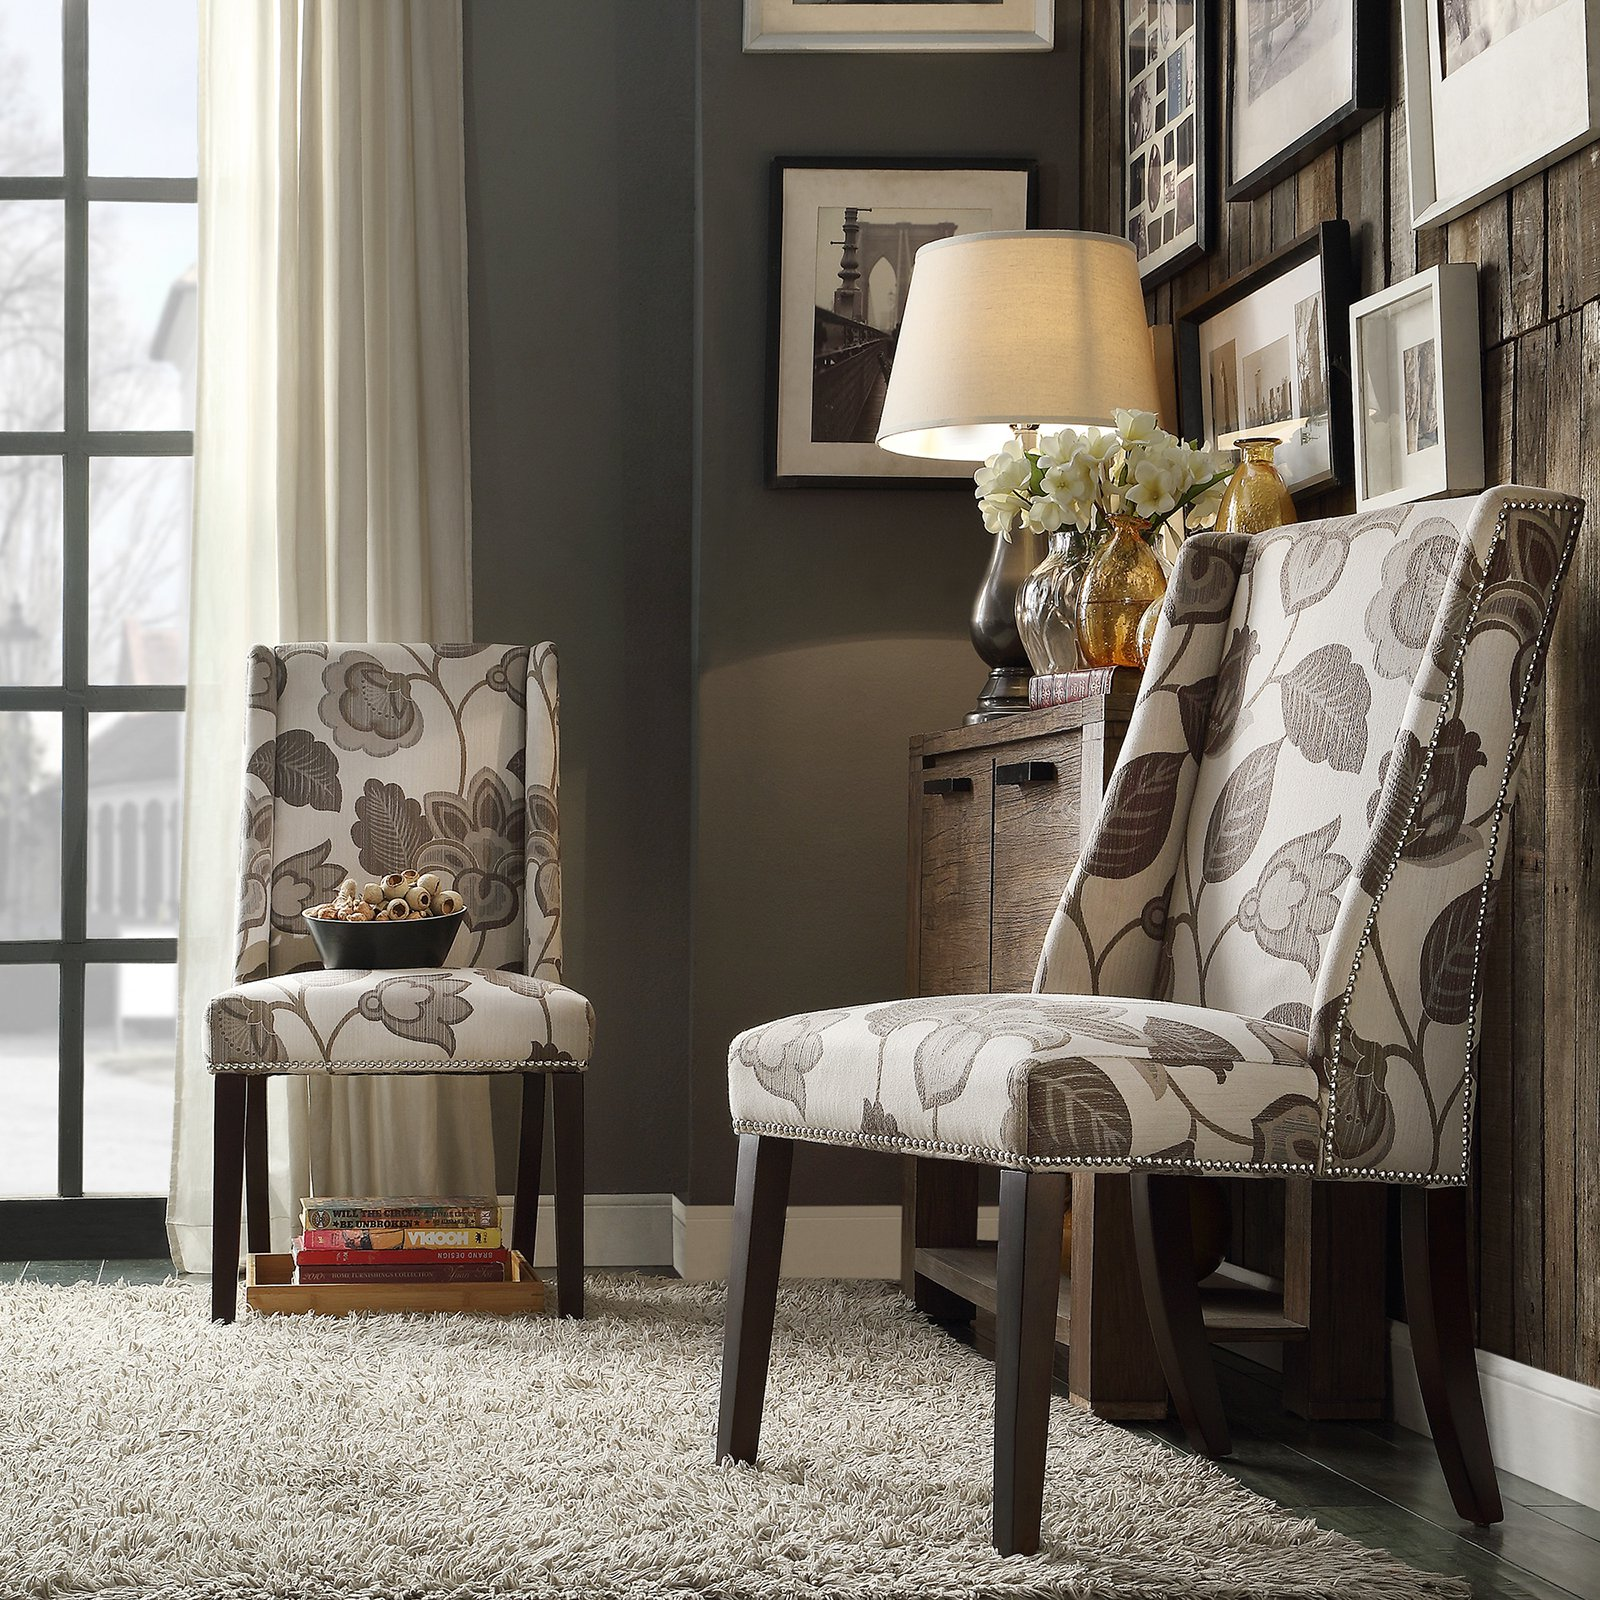 factory direct accent chair sofa club side upholstered letter print chelsea lane classic gray flower with leaves wingback chairs set yellow office target arms sunflower deco green